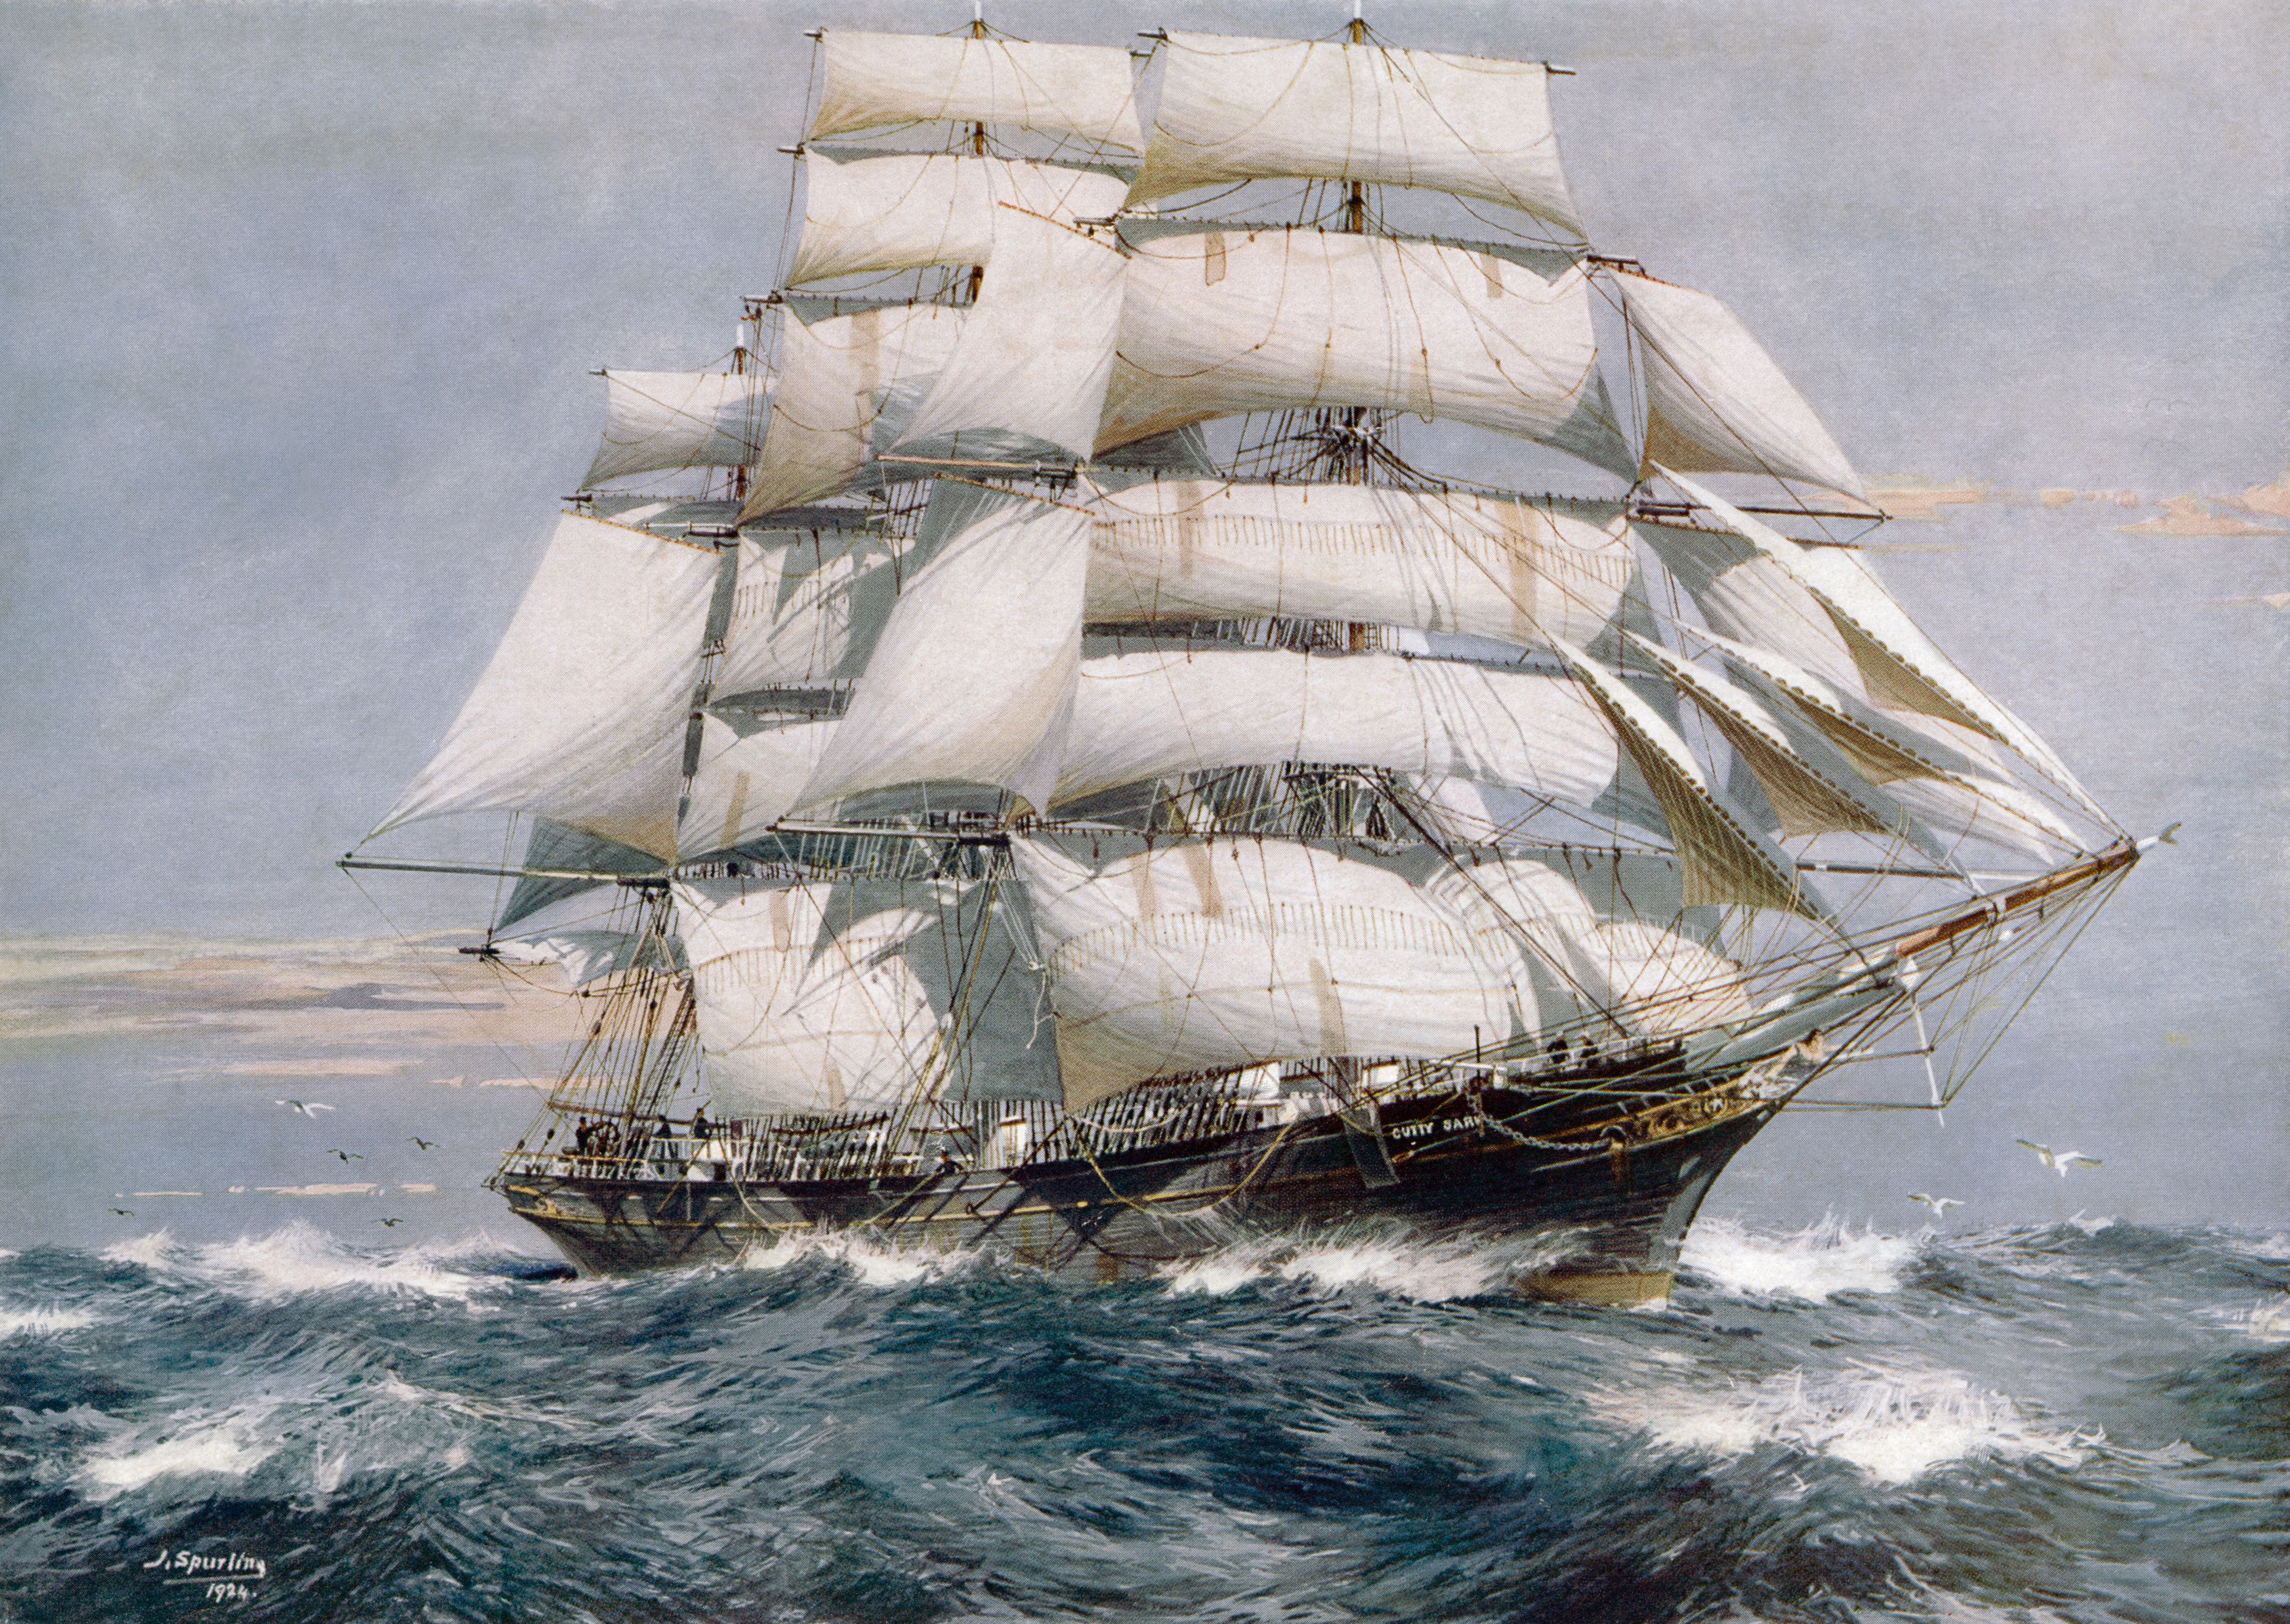 A painting of the Cutty Sark